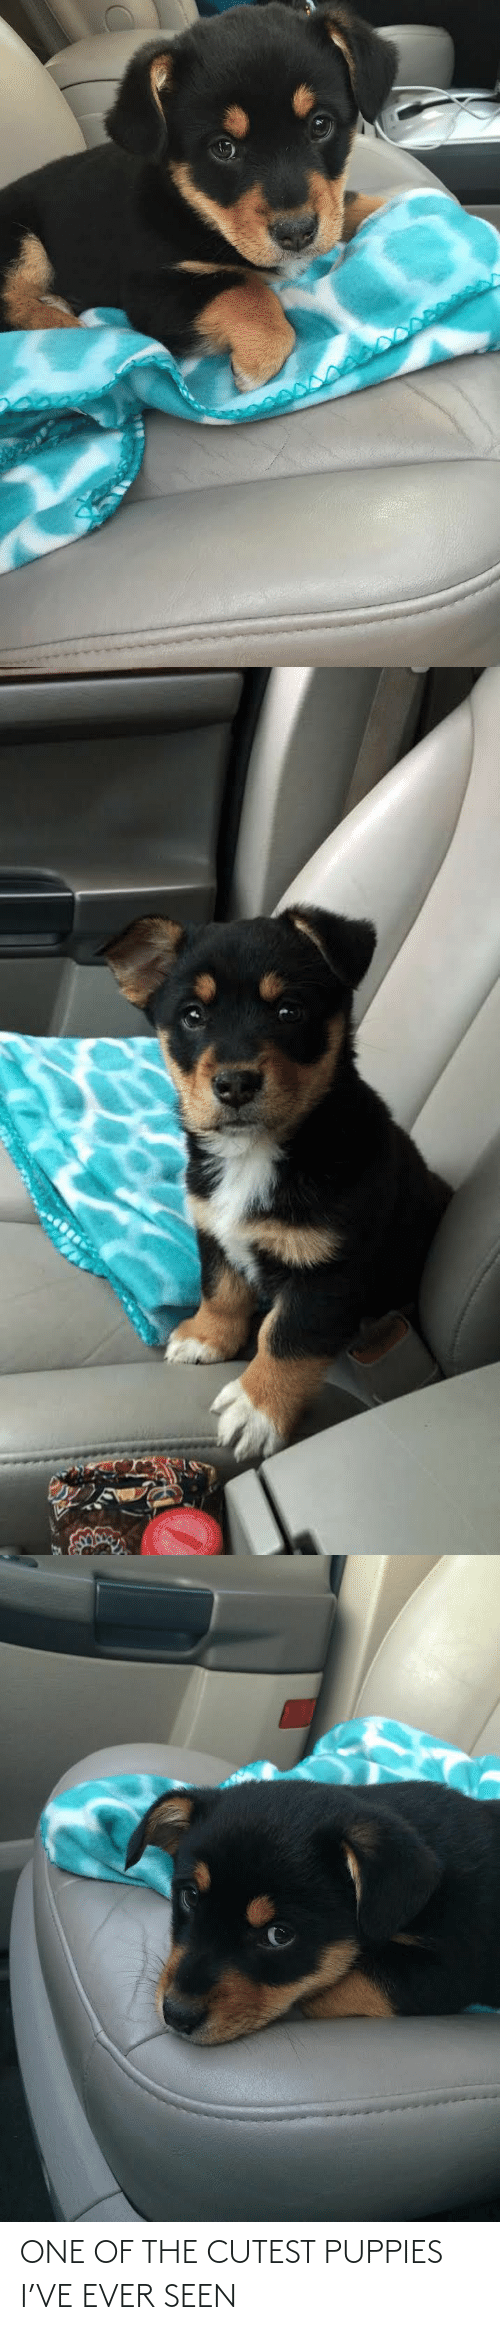 Puppies: ONE OF THE CUTEST PUPPIES I'VE EVER SEEN